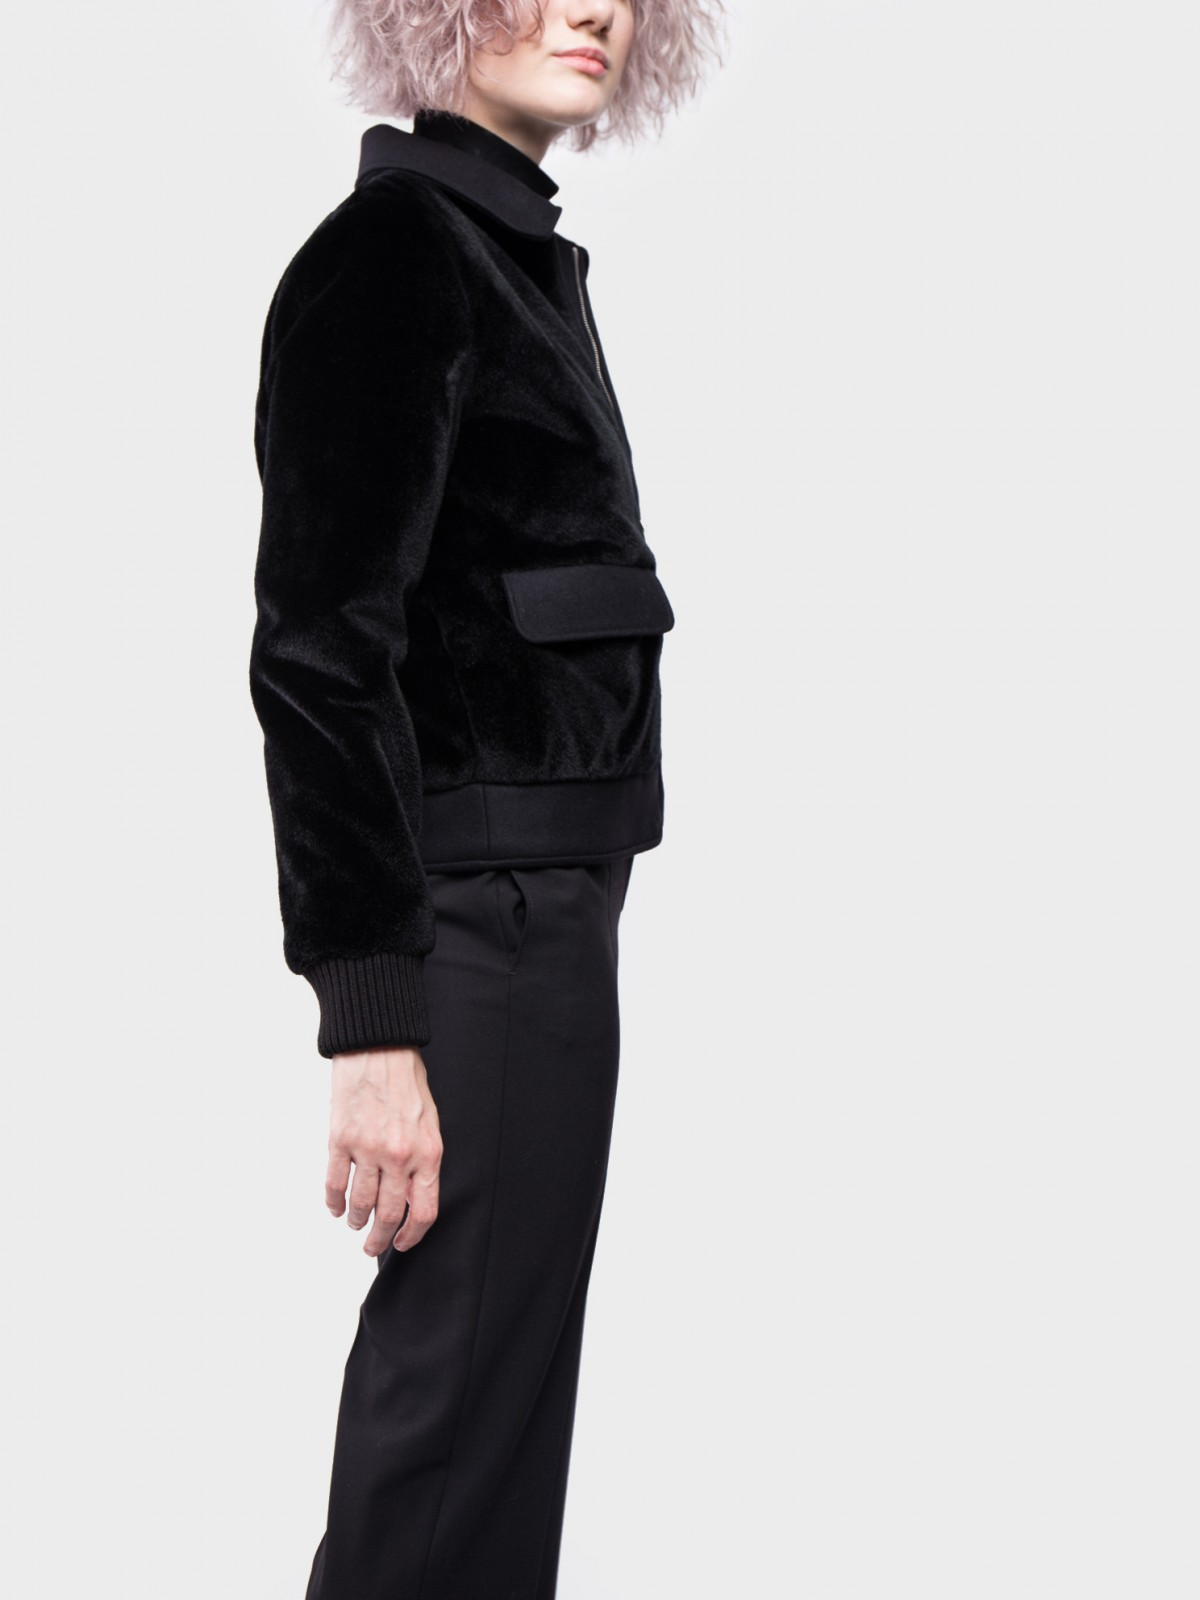 A.P.C. Blouson Brune  in Black